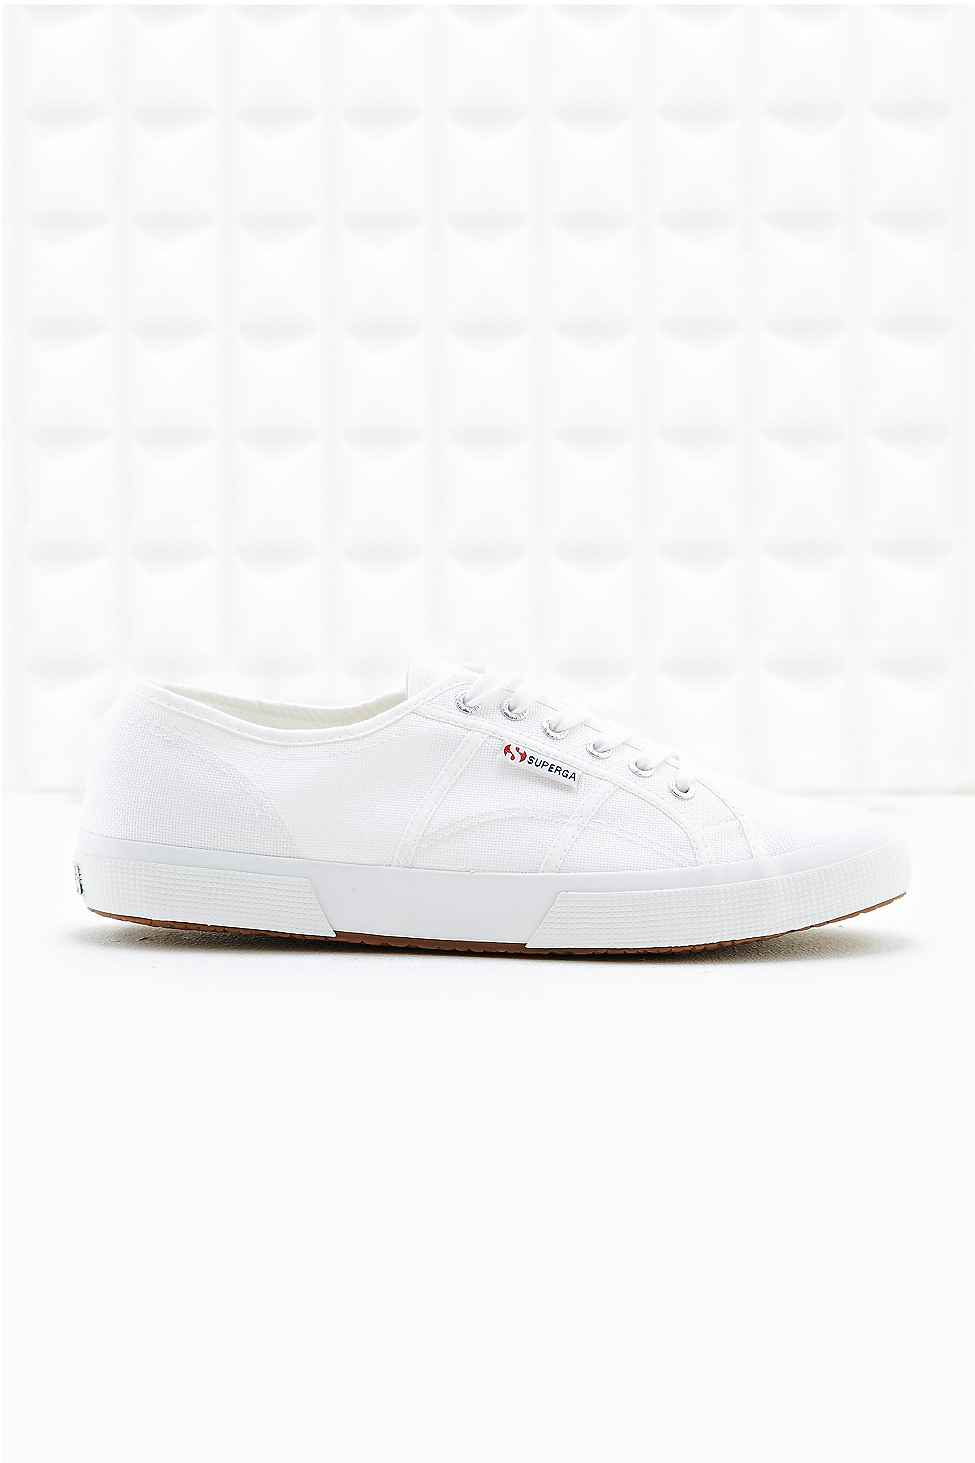 2750 Cotu Trainers in White by Superga